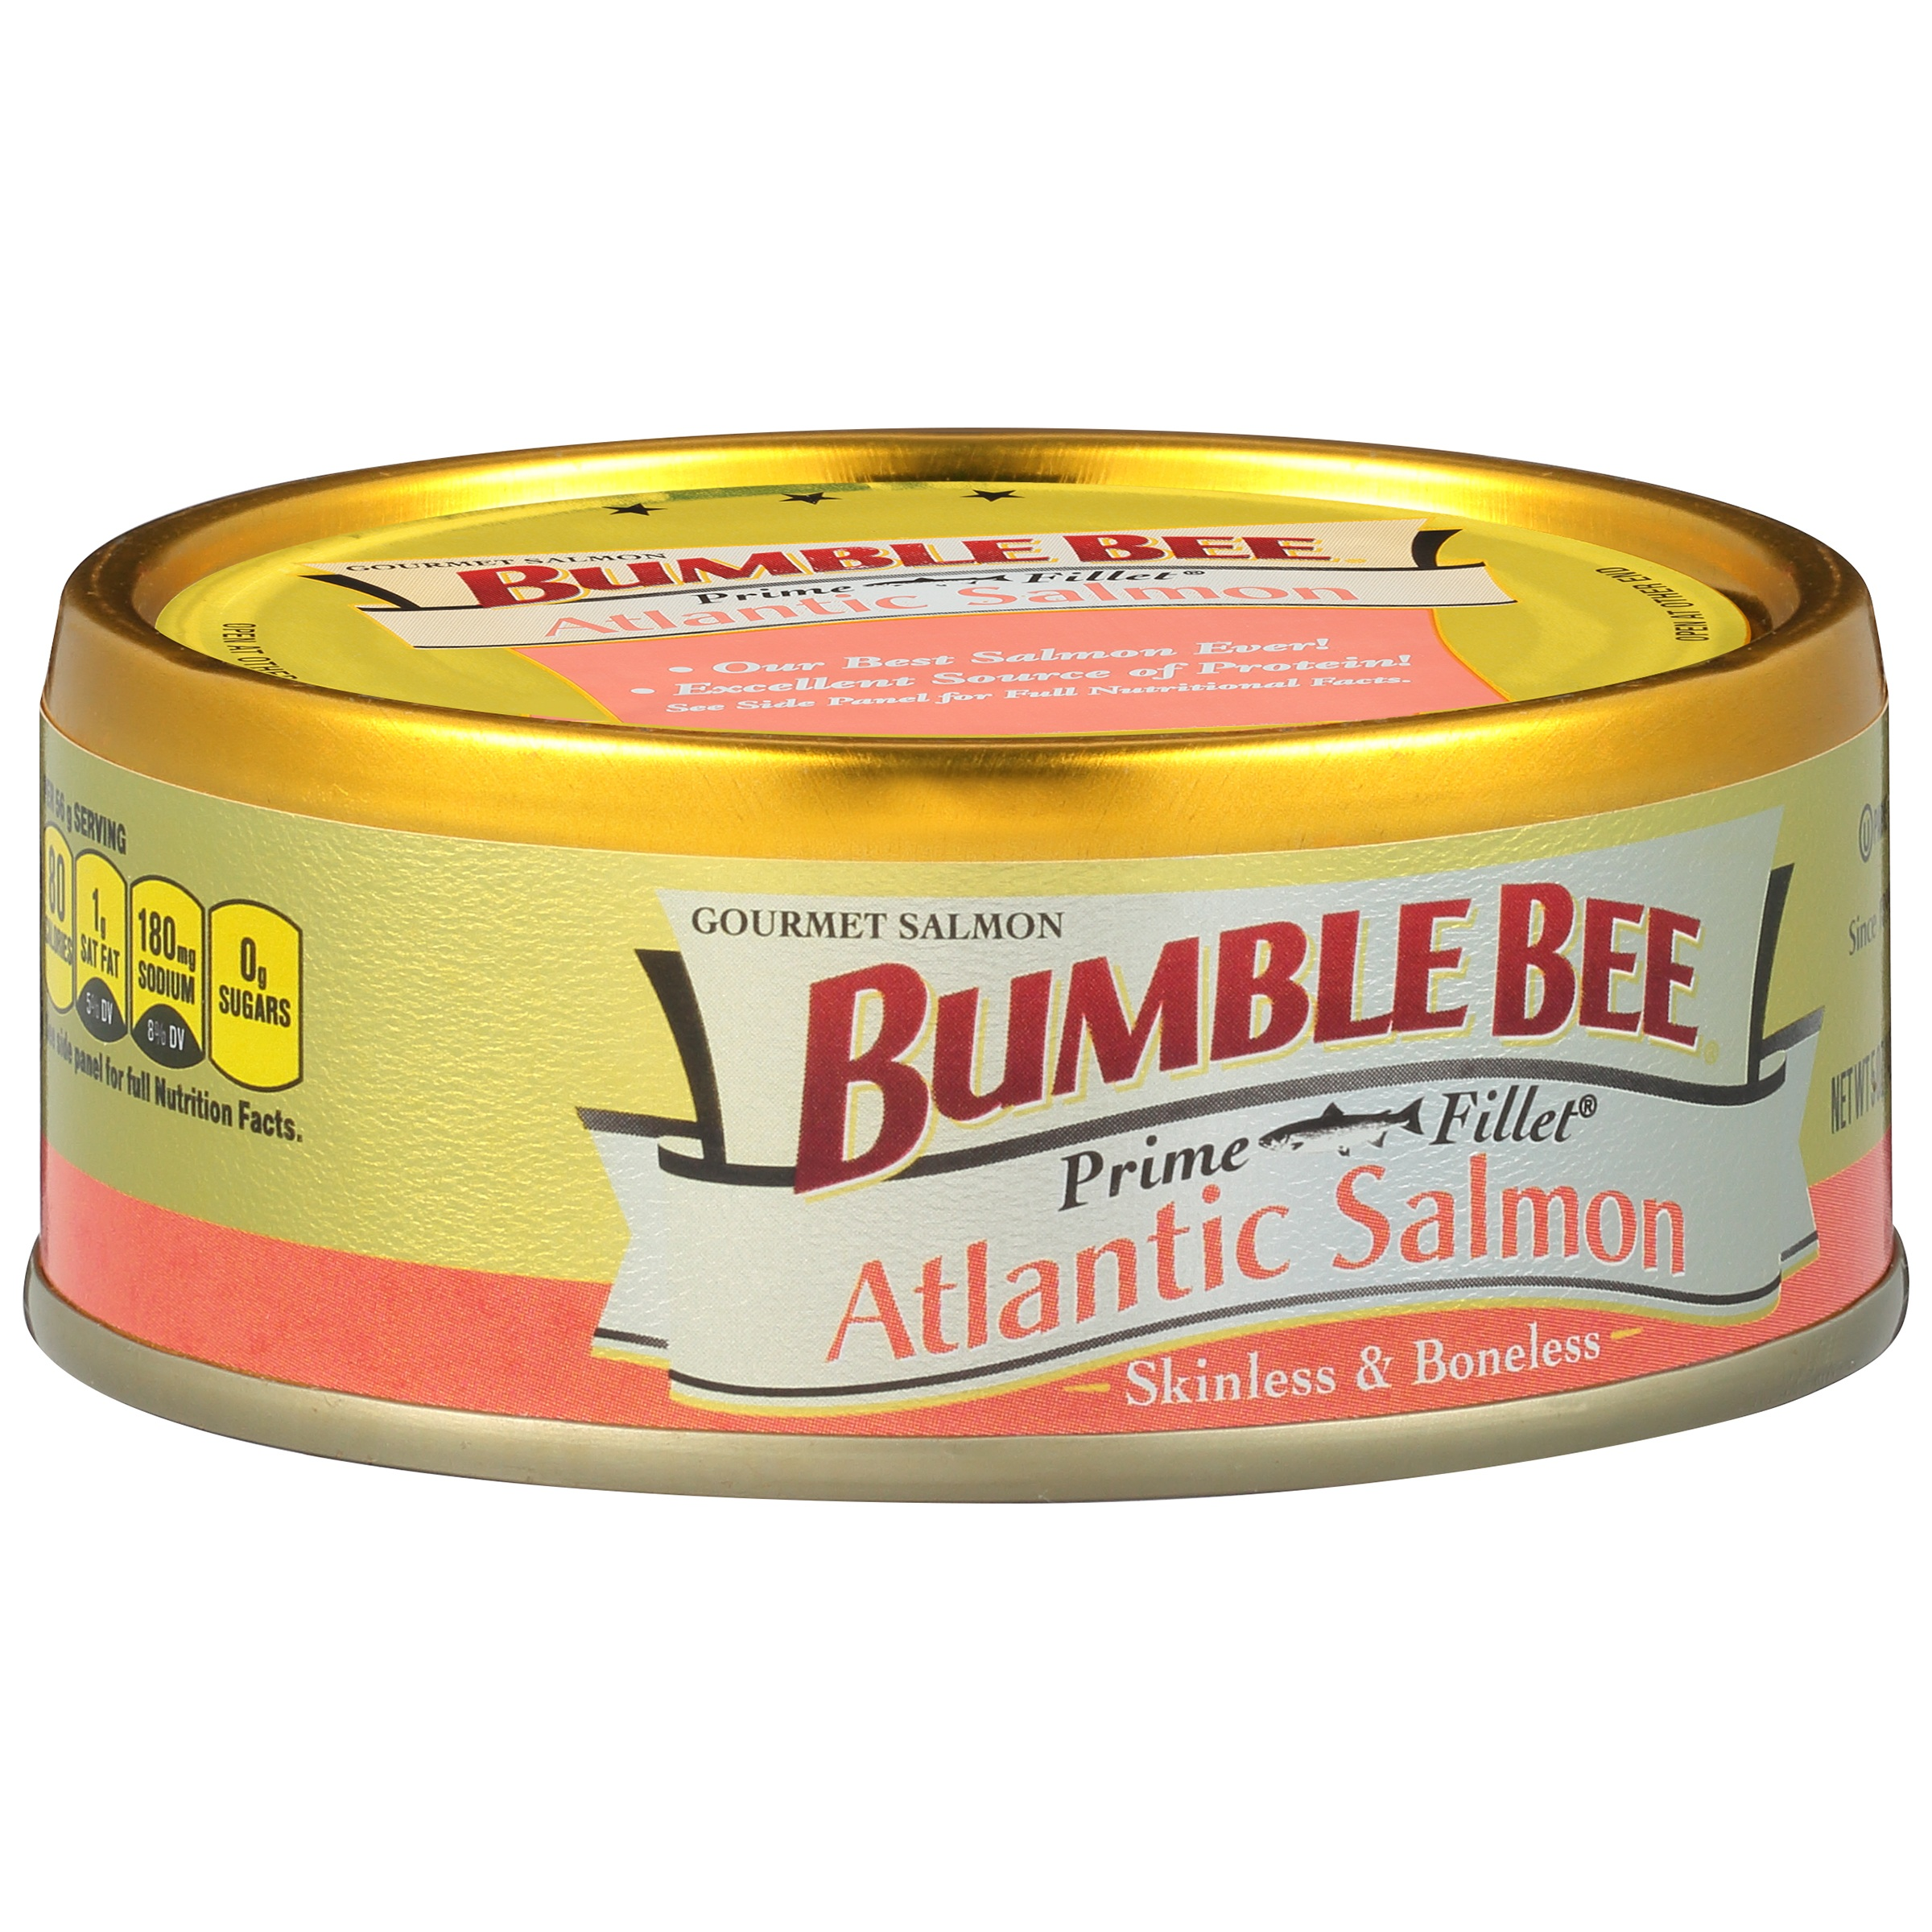 Bumble Bee Prime Fillet Skinless and Boneless Atlantic Salmon, 5oz can by Bumble Bee Foods